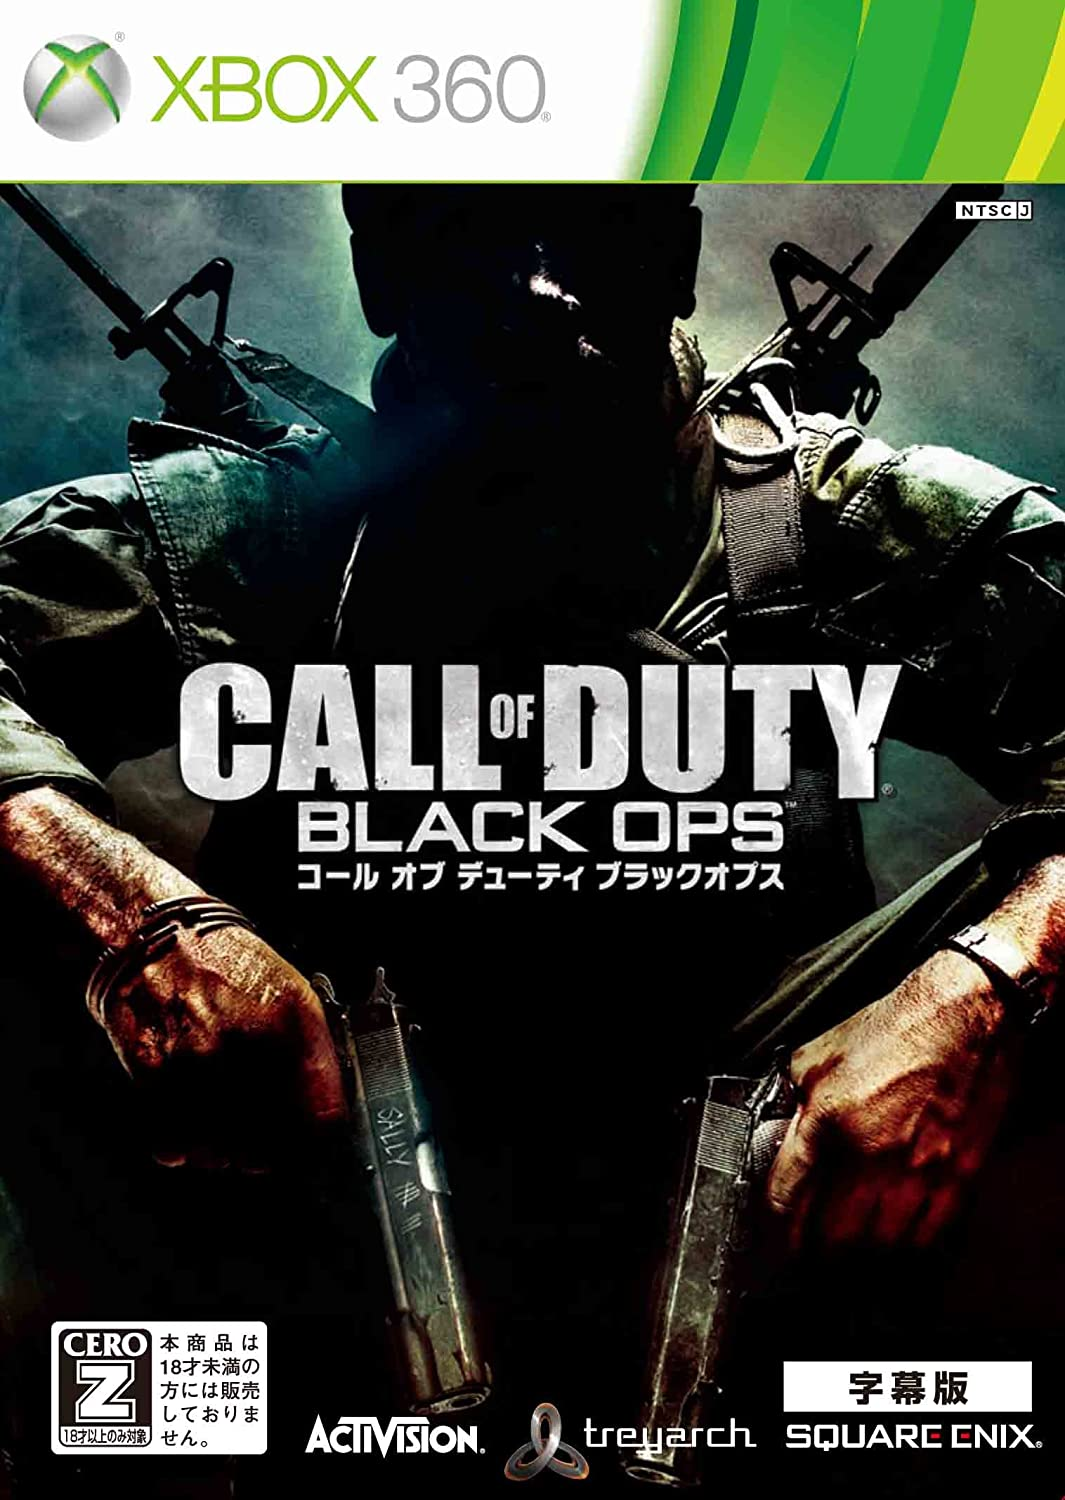 Call of Duty: Black Ops Bombing new work Subtitled Popular product Vers Best New Edition Price